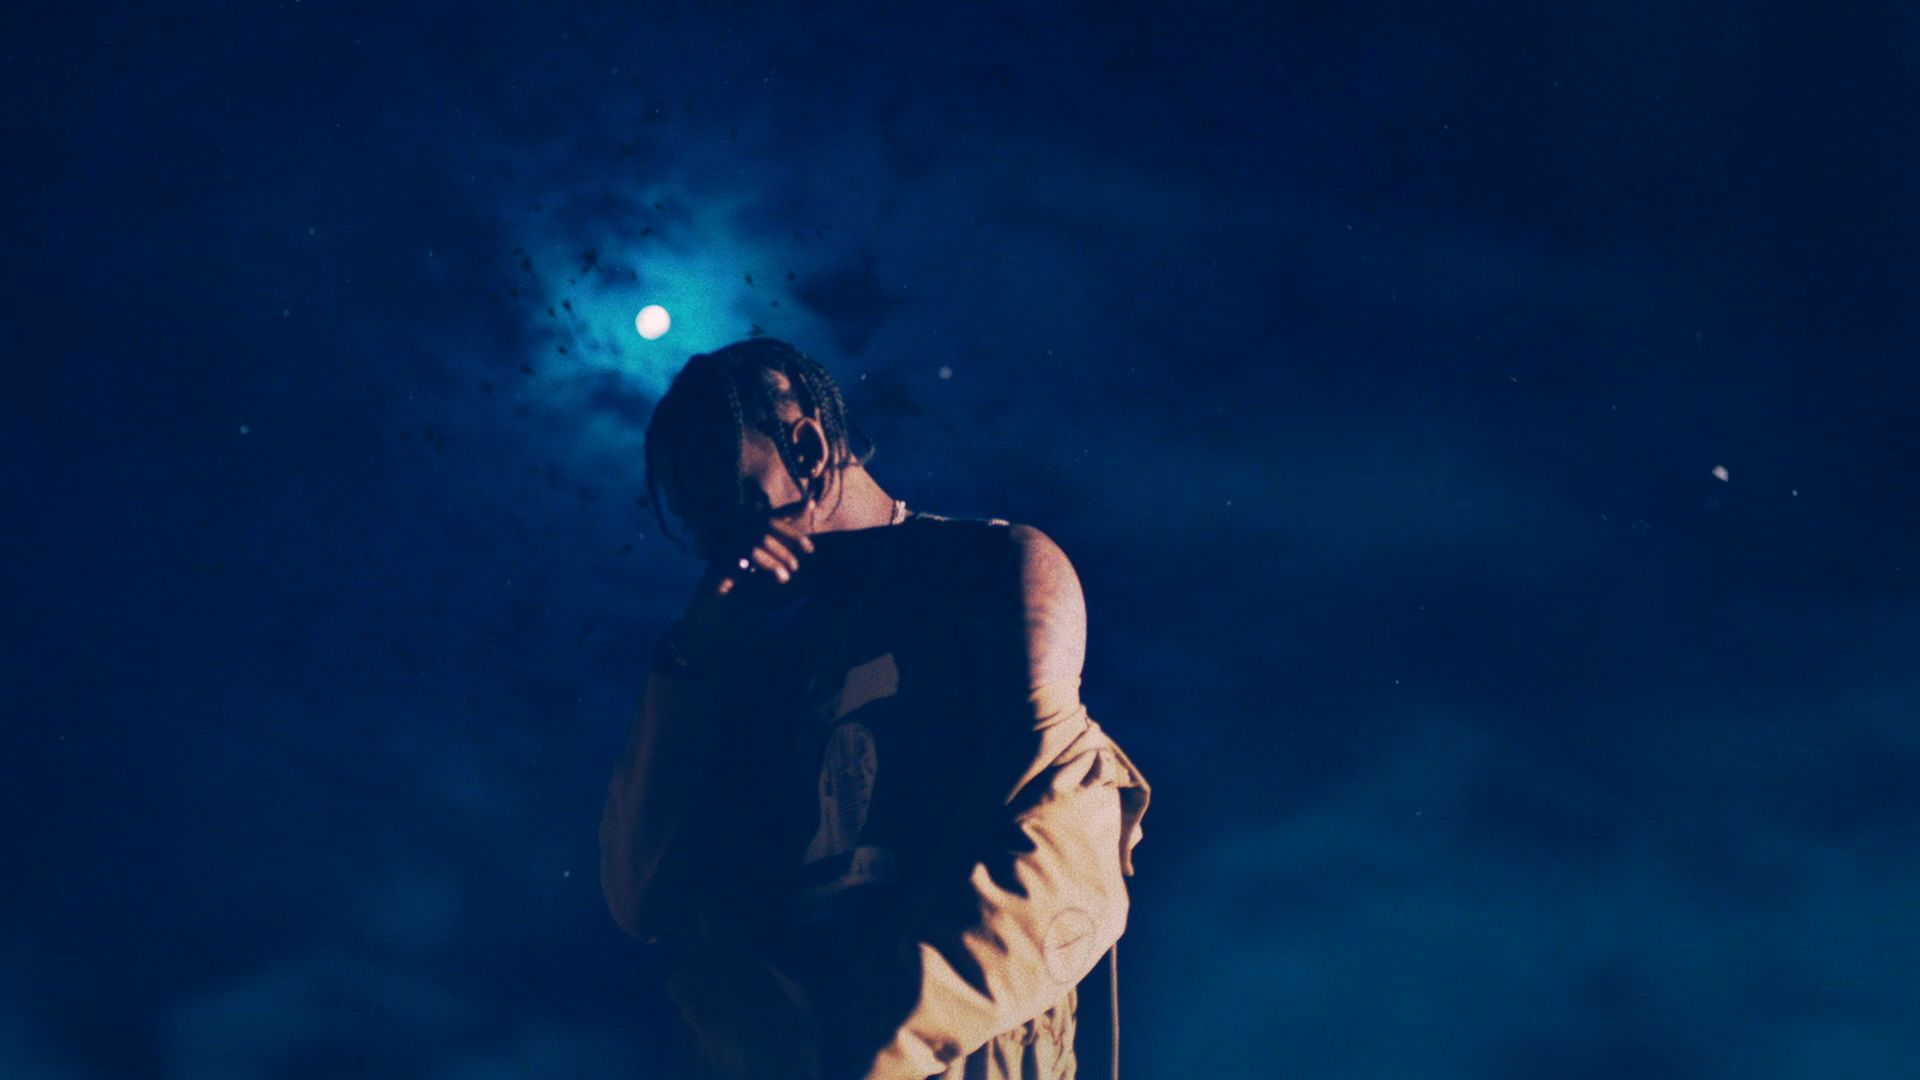 9c0b85c902a4 1548x1024 Travis Scott's 'Astroworld' Takes Listeners on a Drug-Induced  ...